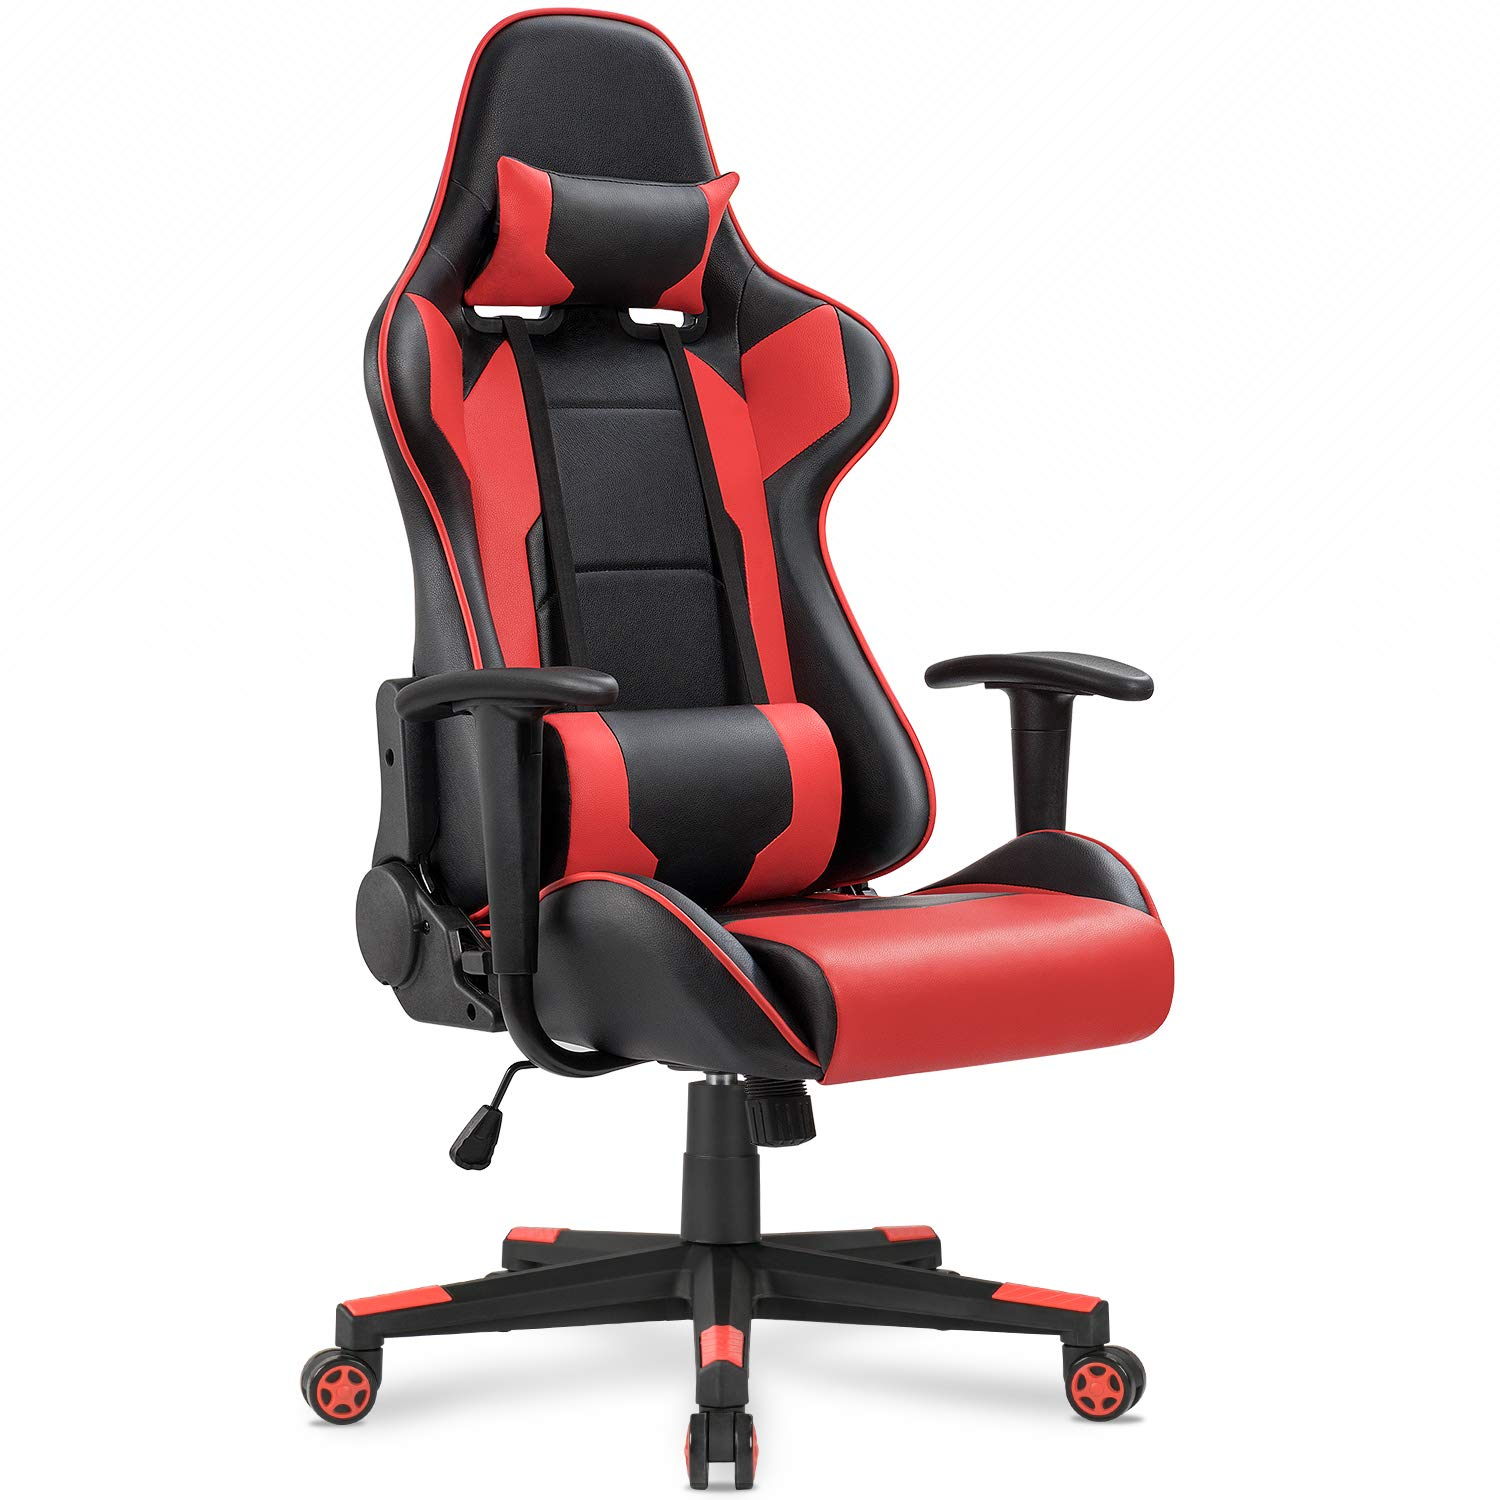 Homall Gaming Chair Racing Style High-Back Faux Leather Office Chair Computer Desk Chair Executive and Ergonomic Style Swivel Chair with Headrest and Lumbar Support(Red)